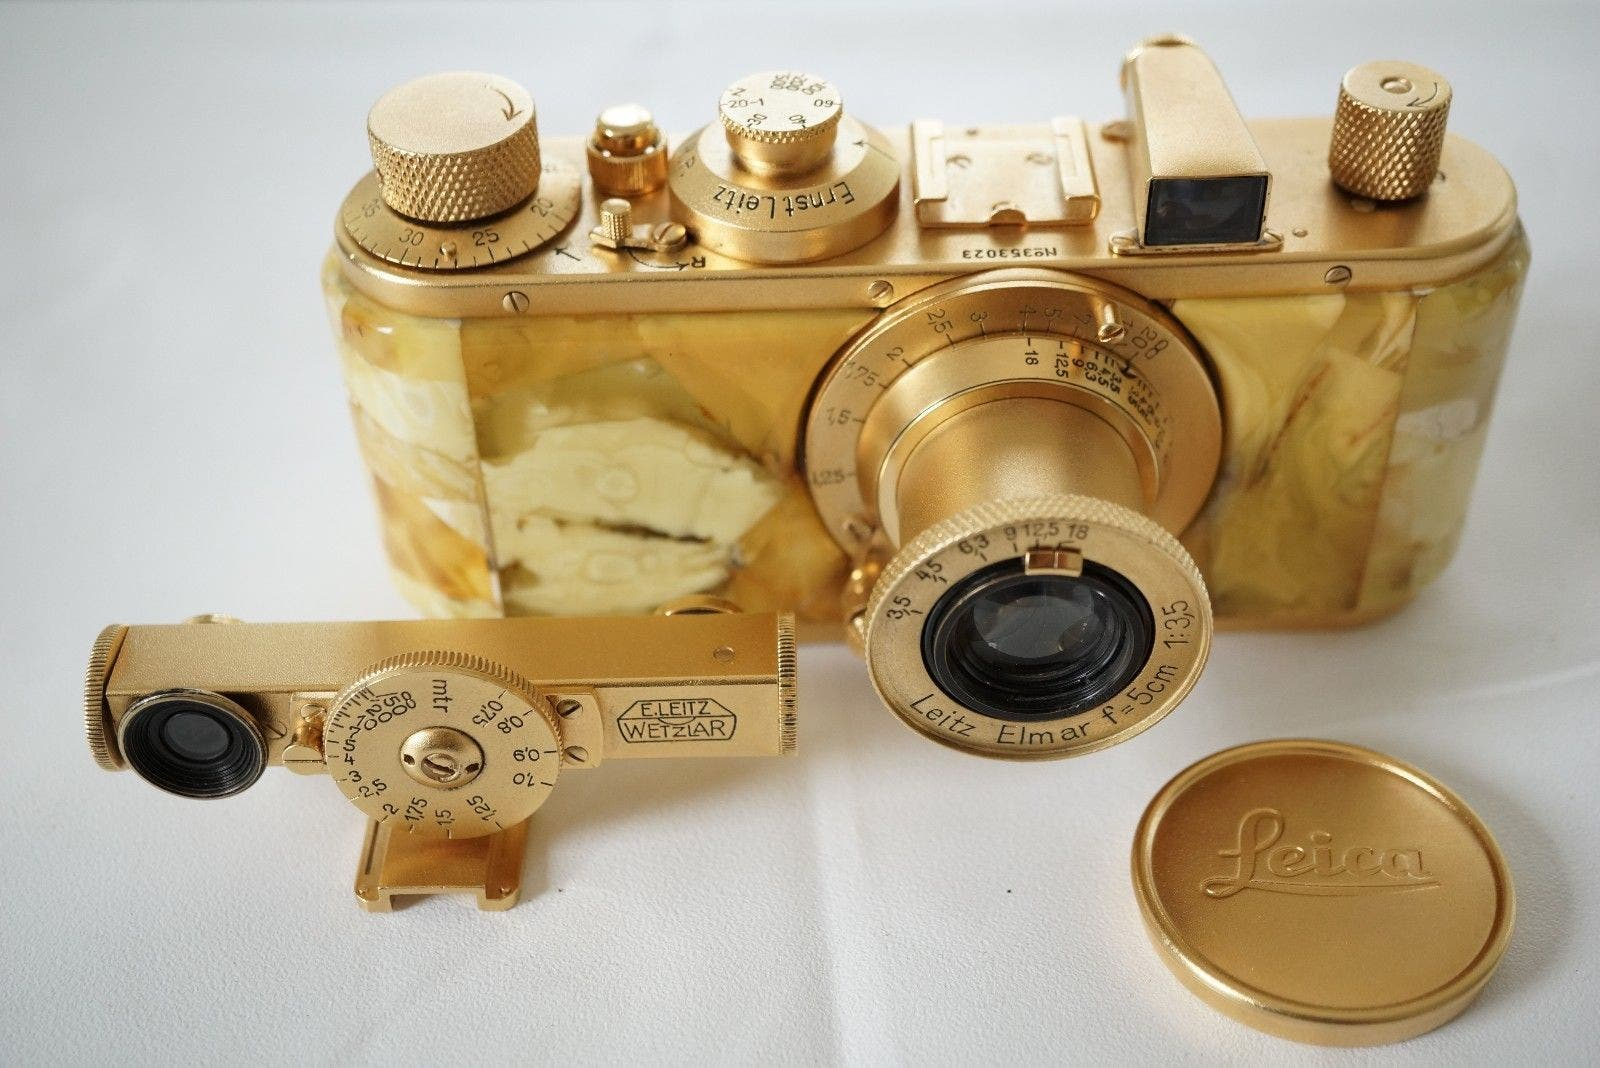 This Gold-Plated and Amber-Covered Leica Standard is Yours for $3,500